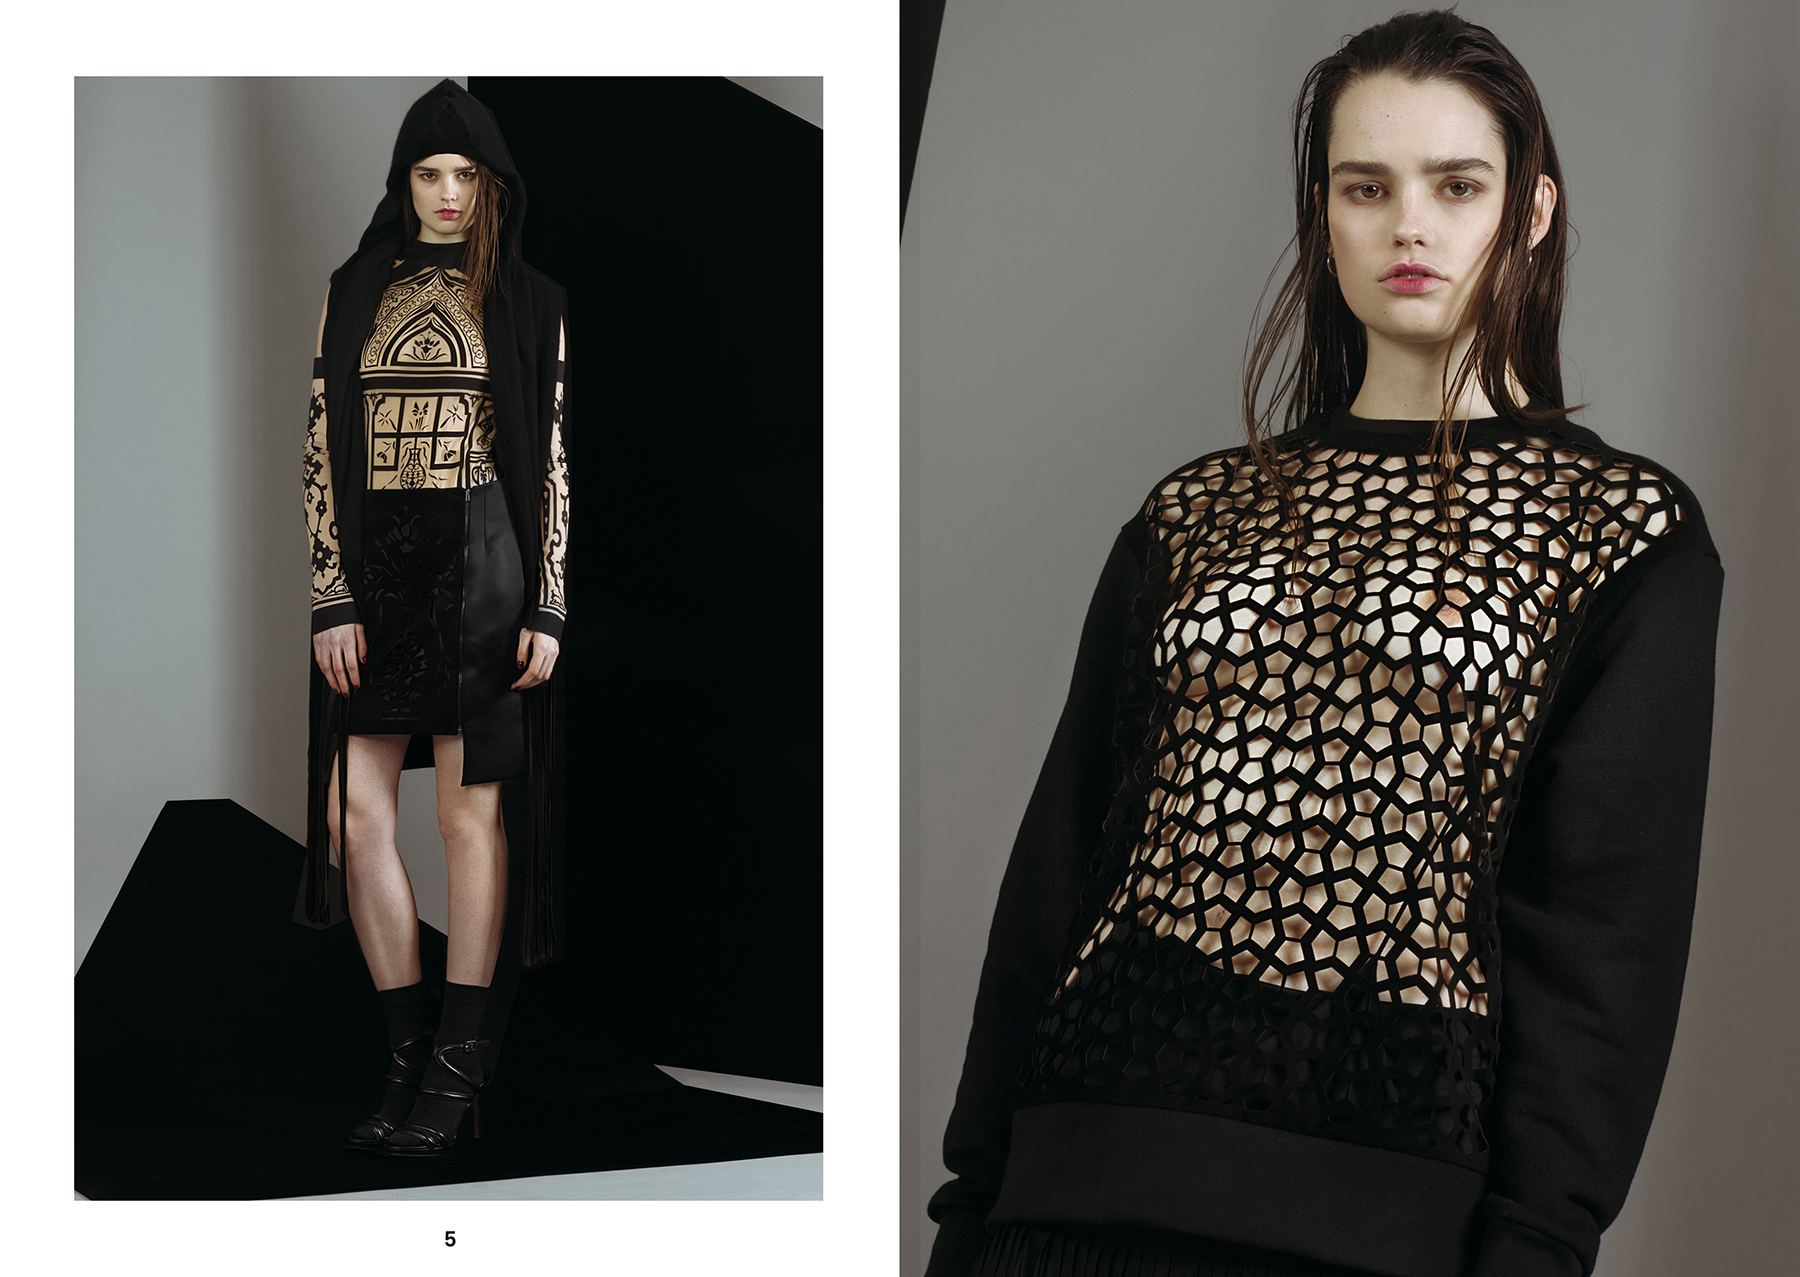 aw15_lookbook_digital_HIRES-4